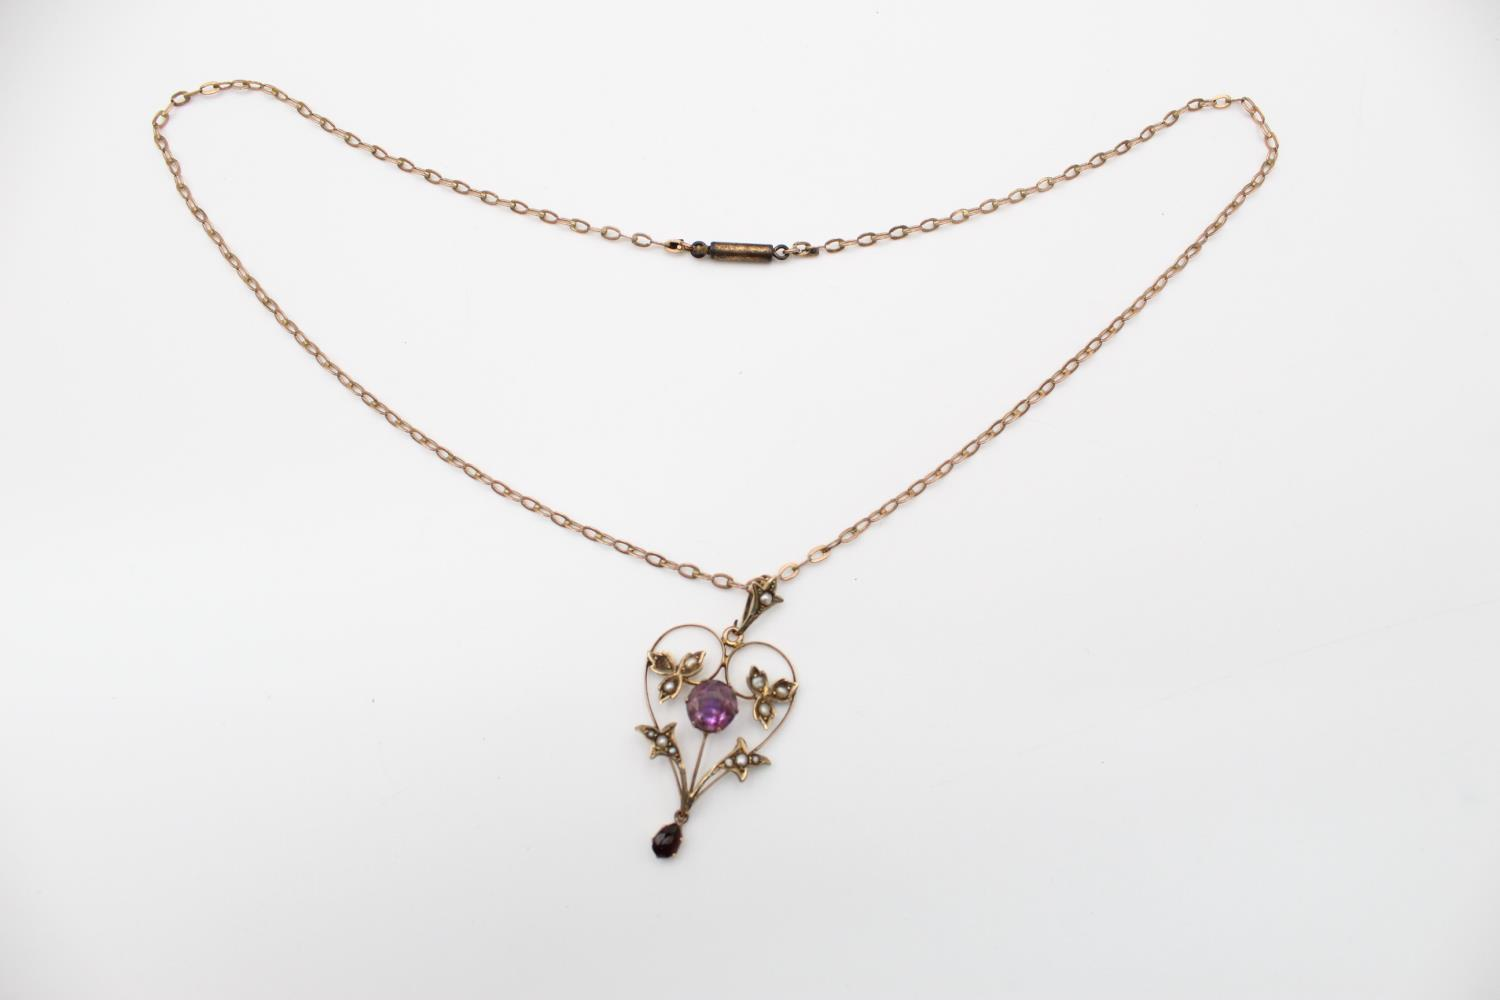 Antique 9ct Gold amethyst & seed pearl pendant necklace *one seed pearl missing 3.7g - Image 2 of 5